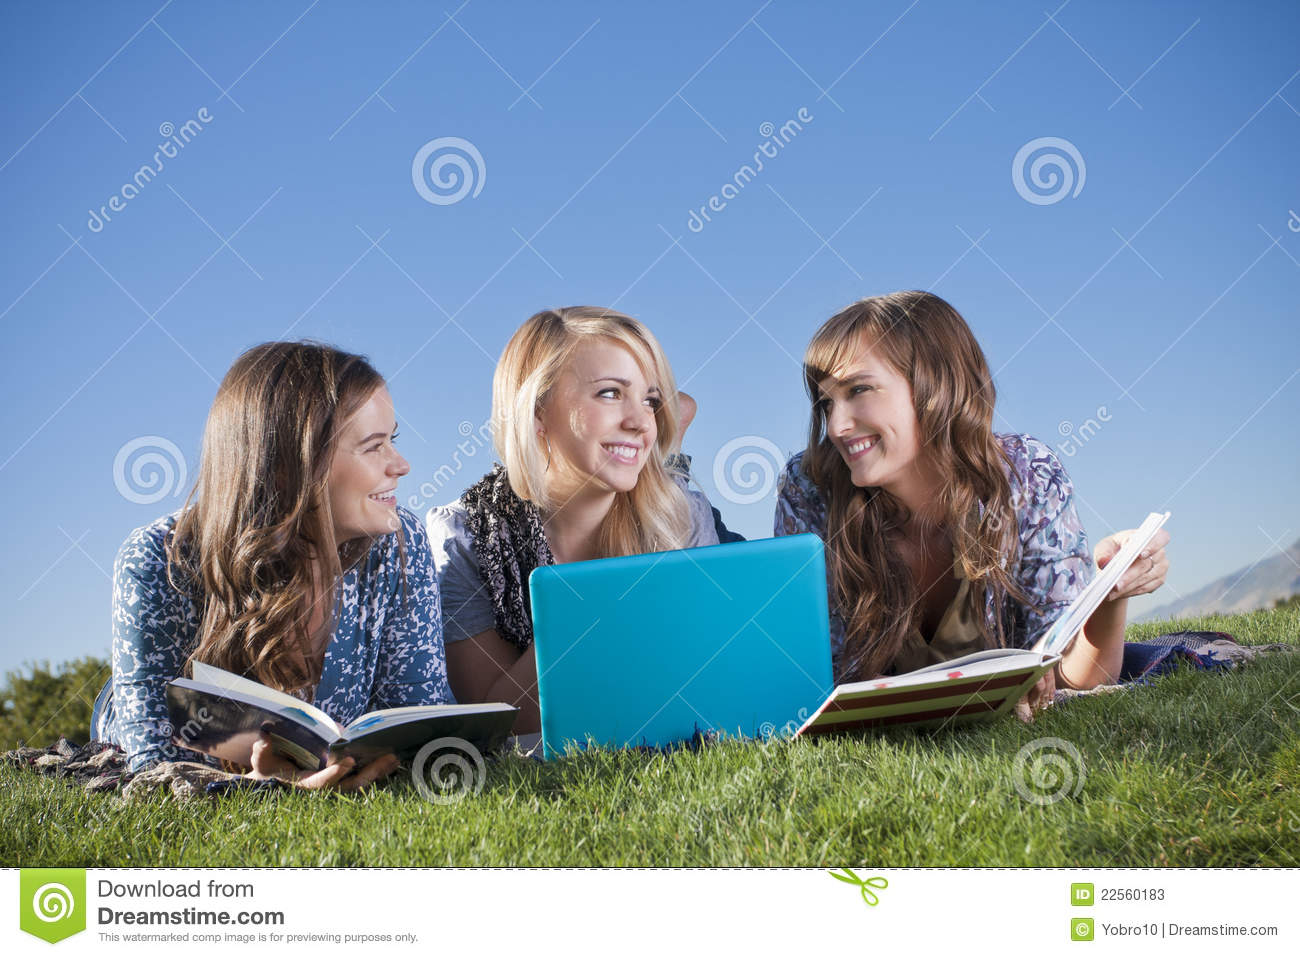 Three Young women studying in the outdoors